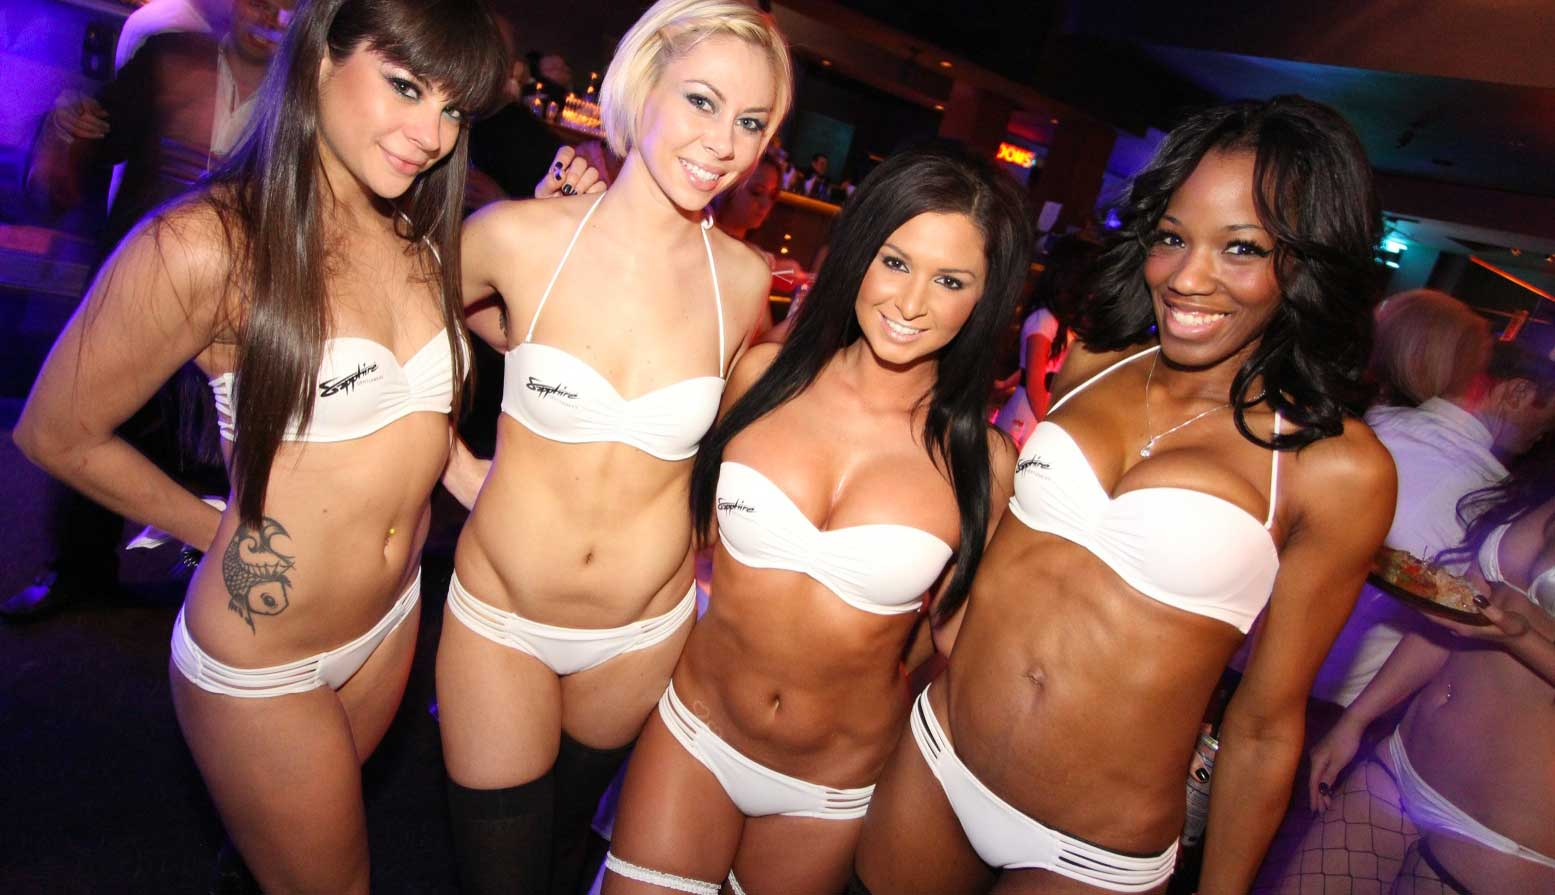 Top 5 Strip Clubs In Las Vegas - Las Vegas - The Poker-1615